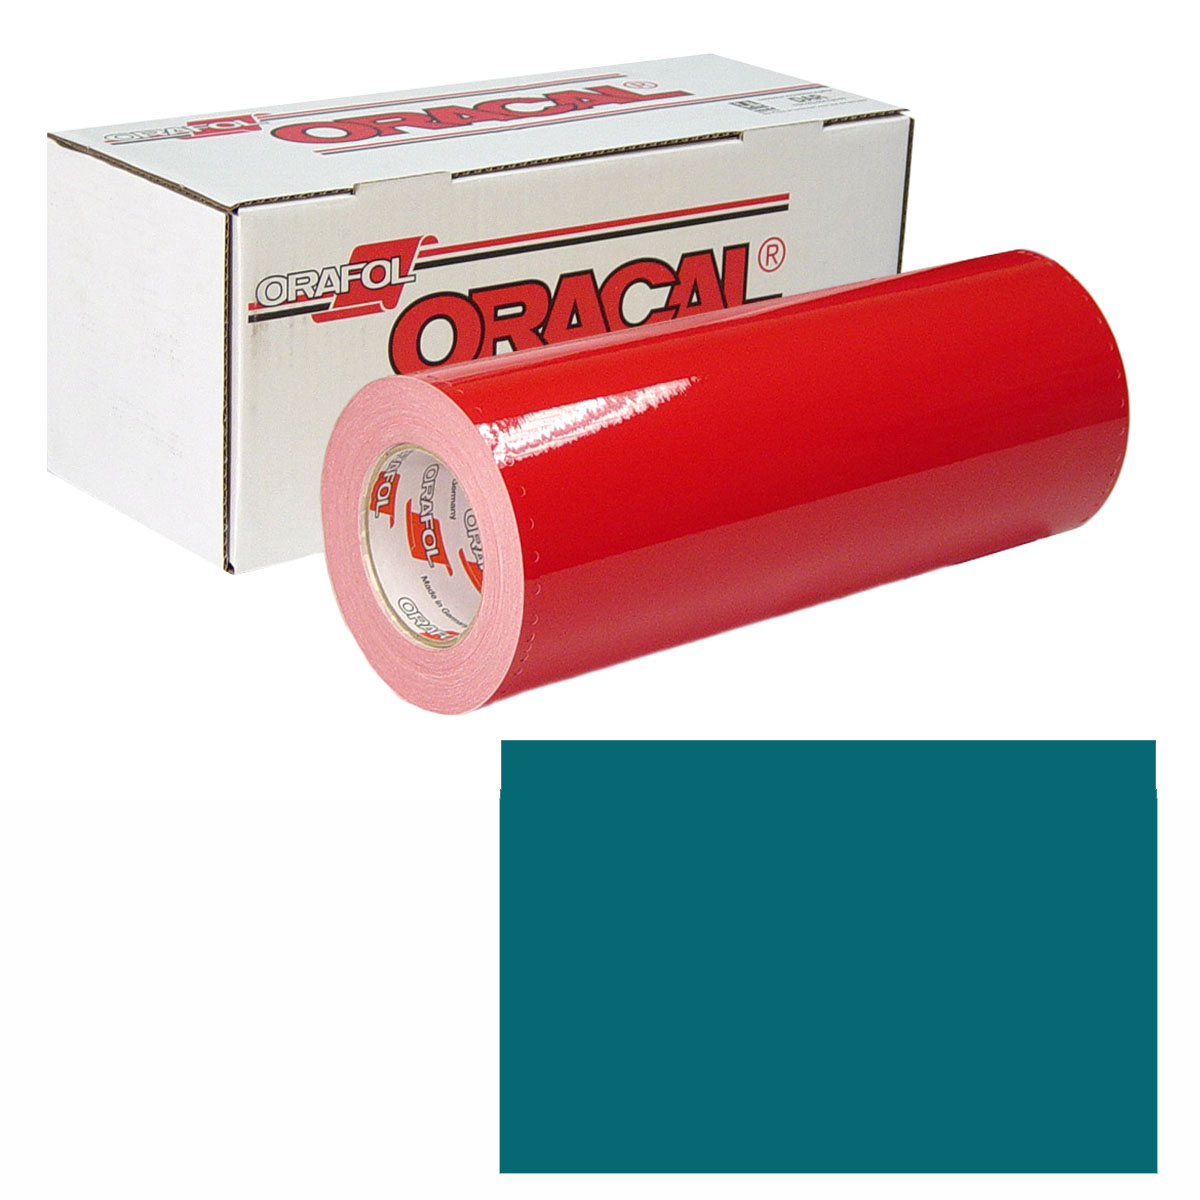 ORACAL 951M Unp 48In X 50Yd 637 Teal Metallic